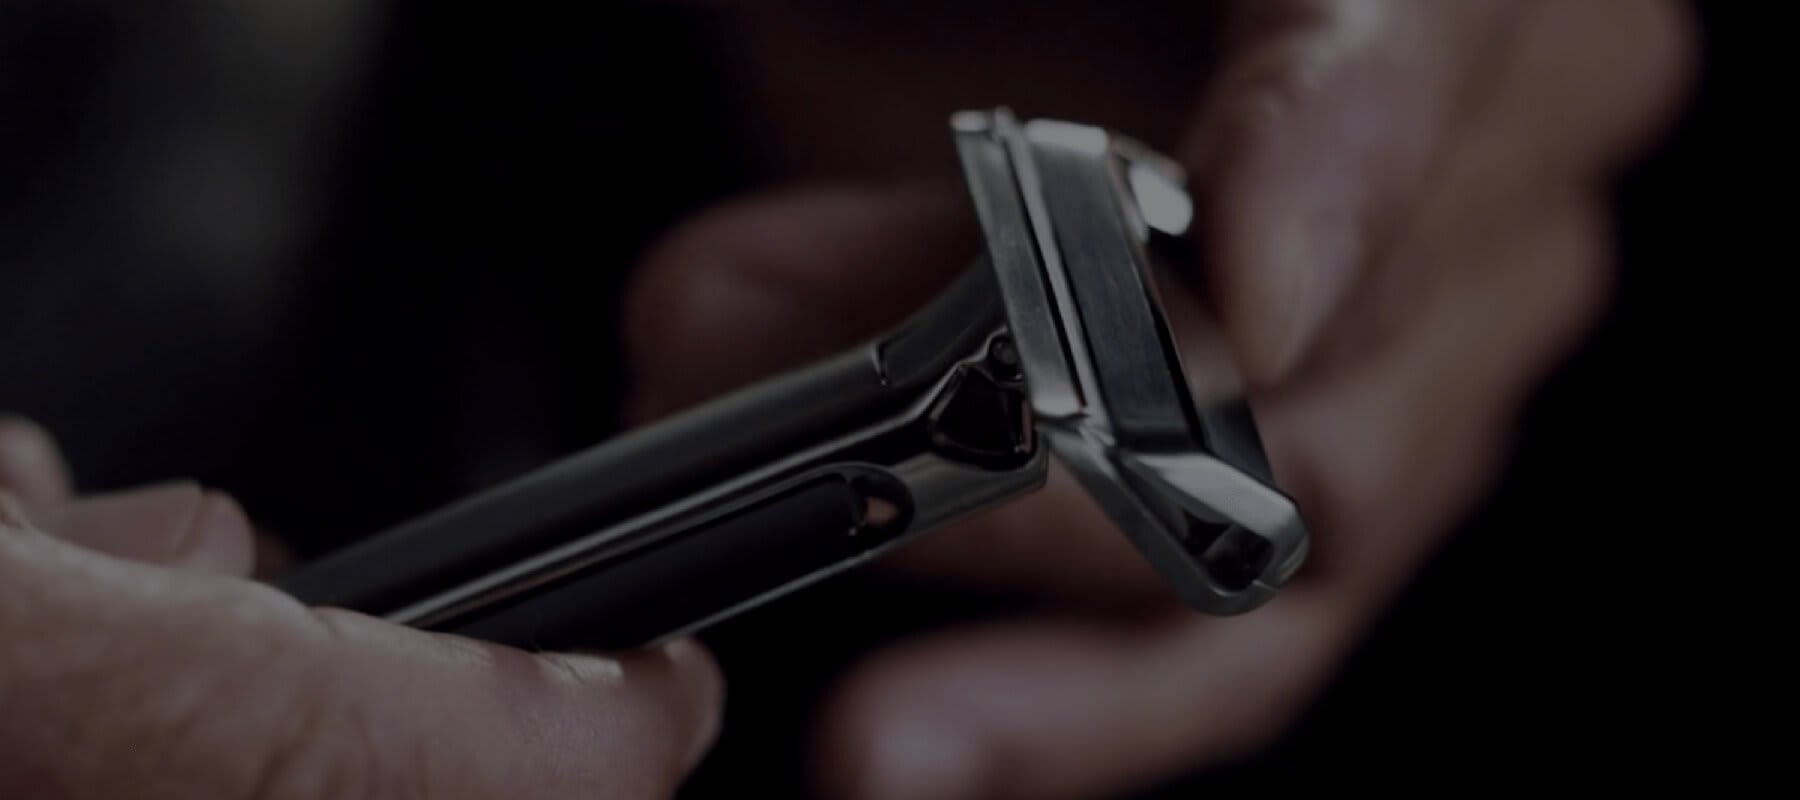 A OneBlade razor being inspected by hand